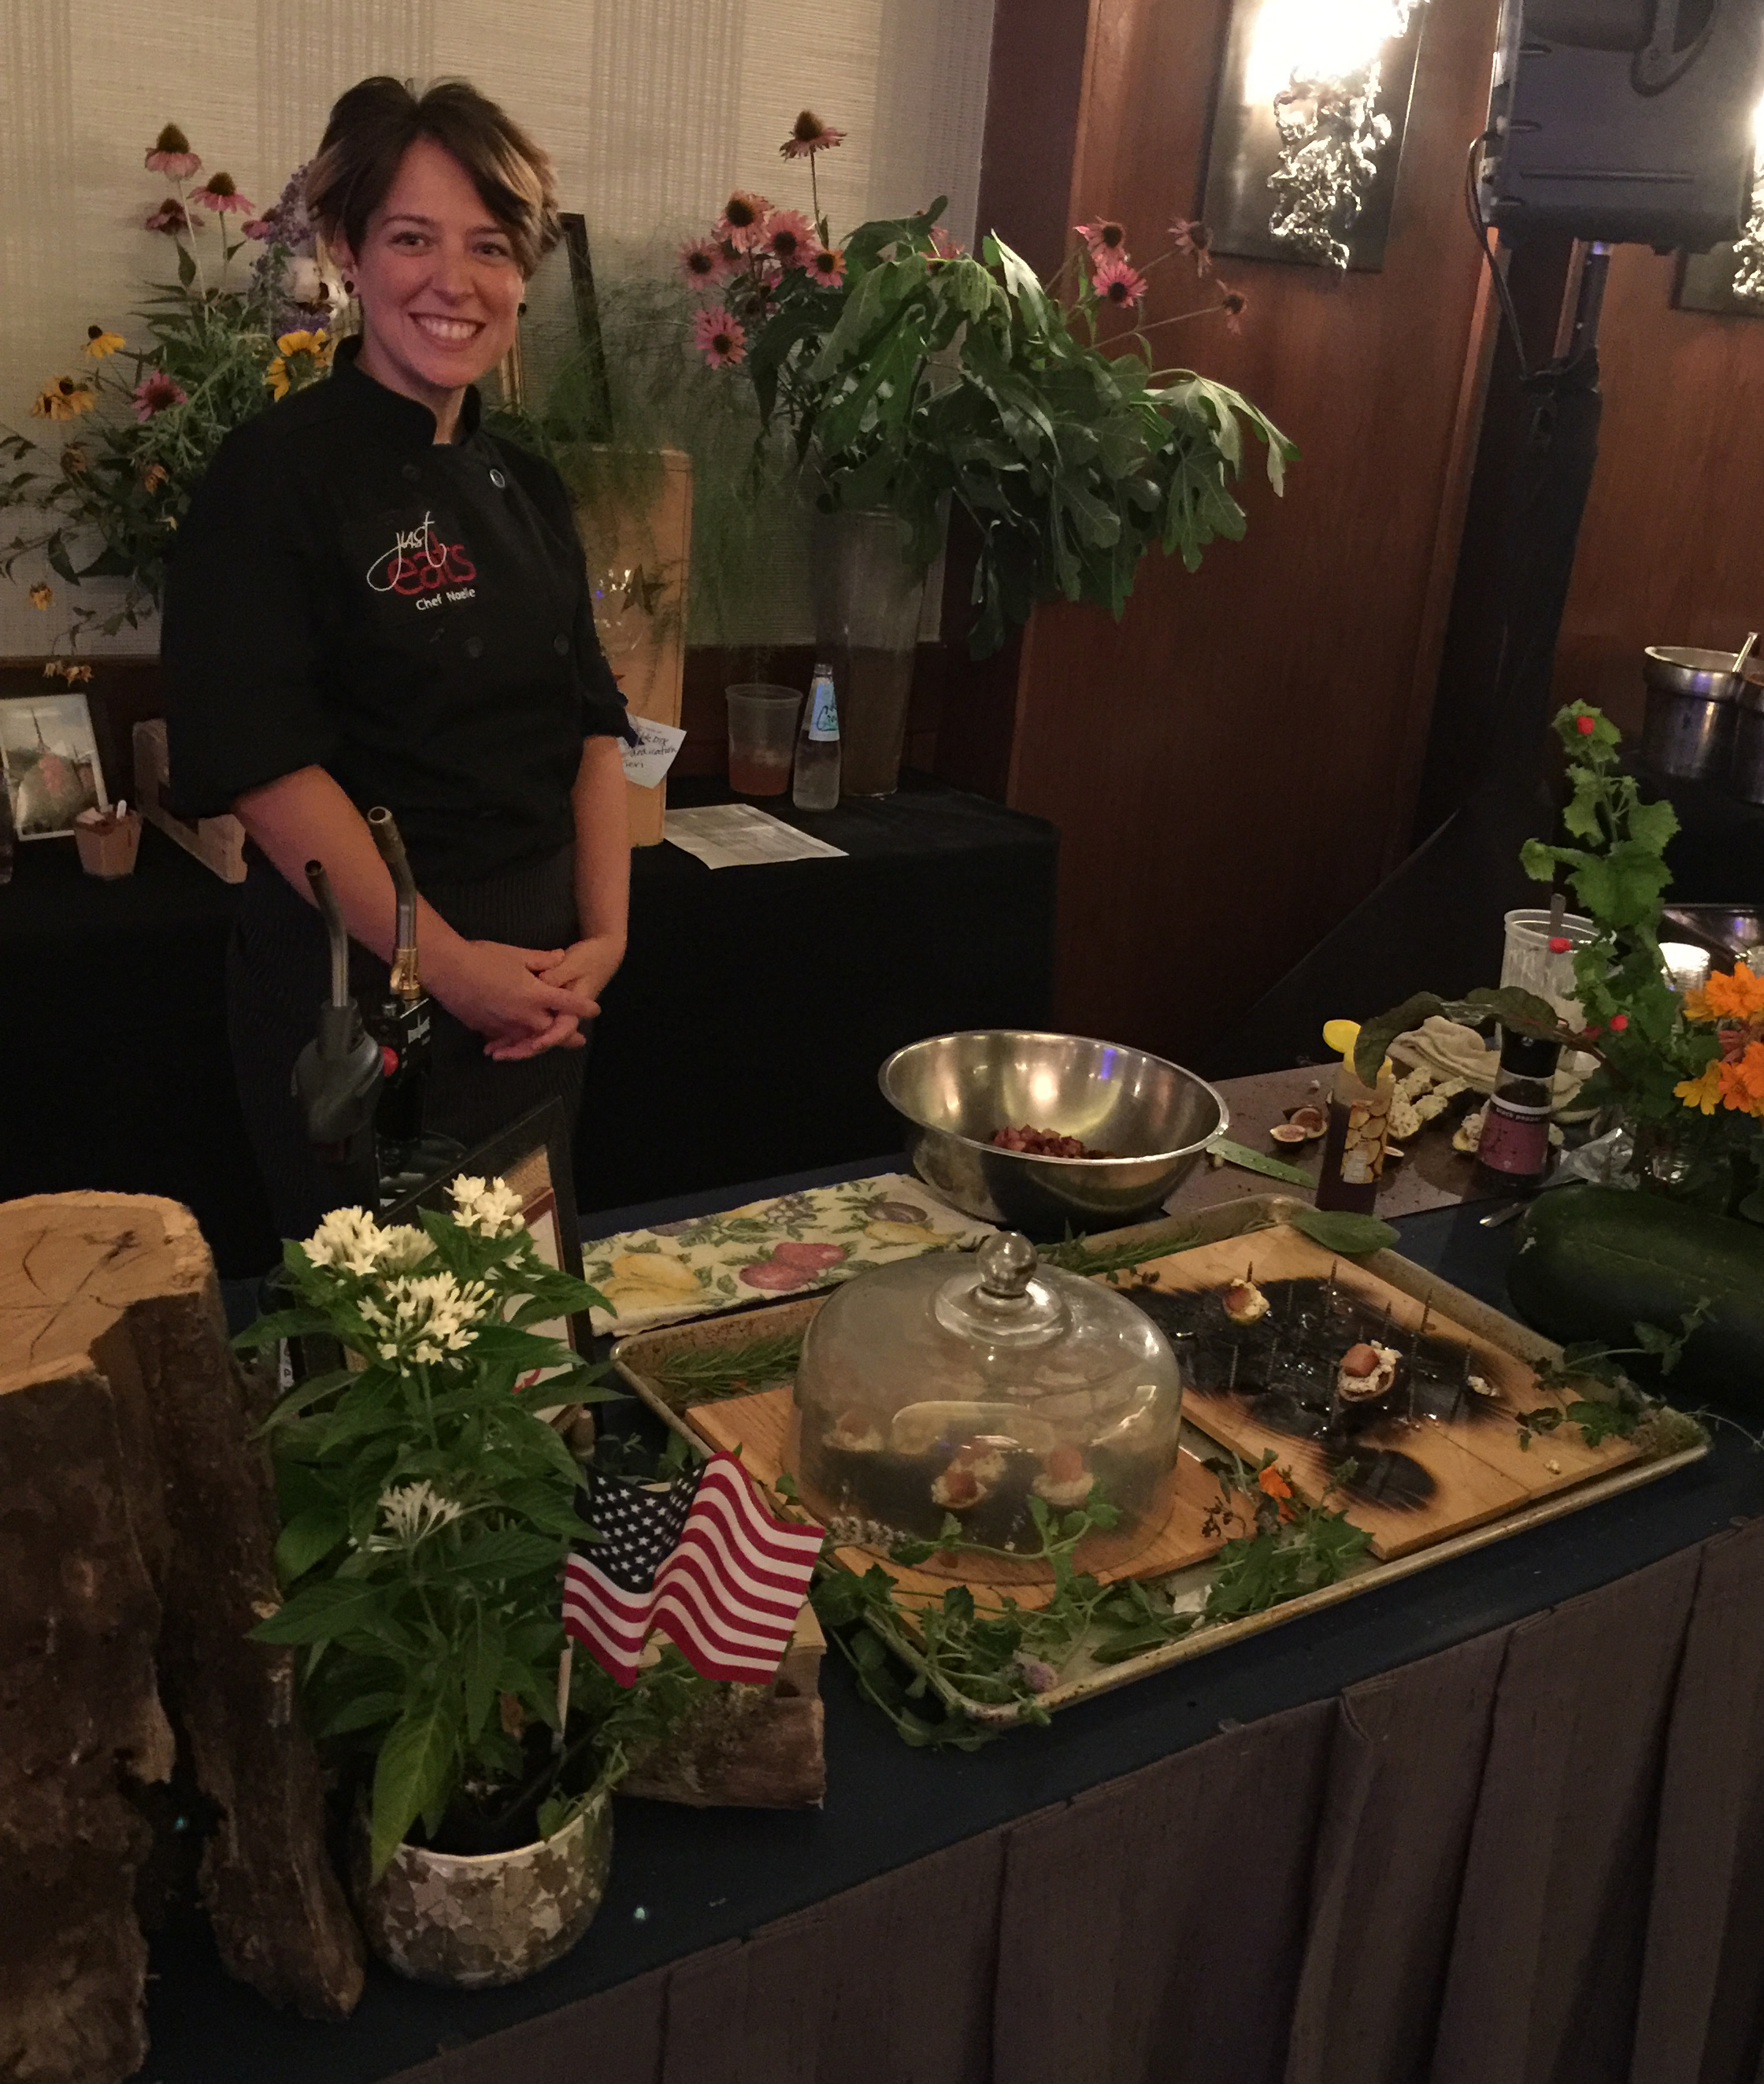 Chef Noelle, Charity Event